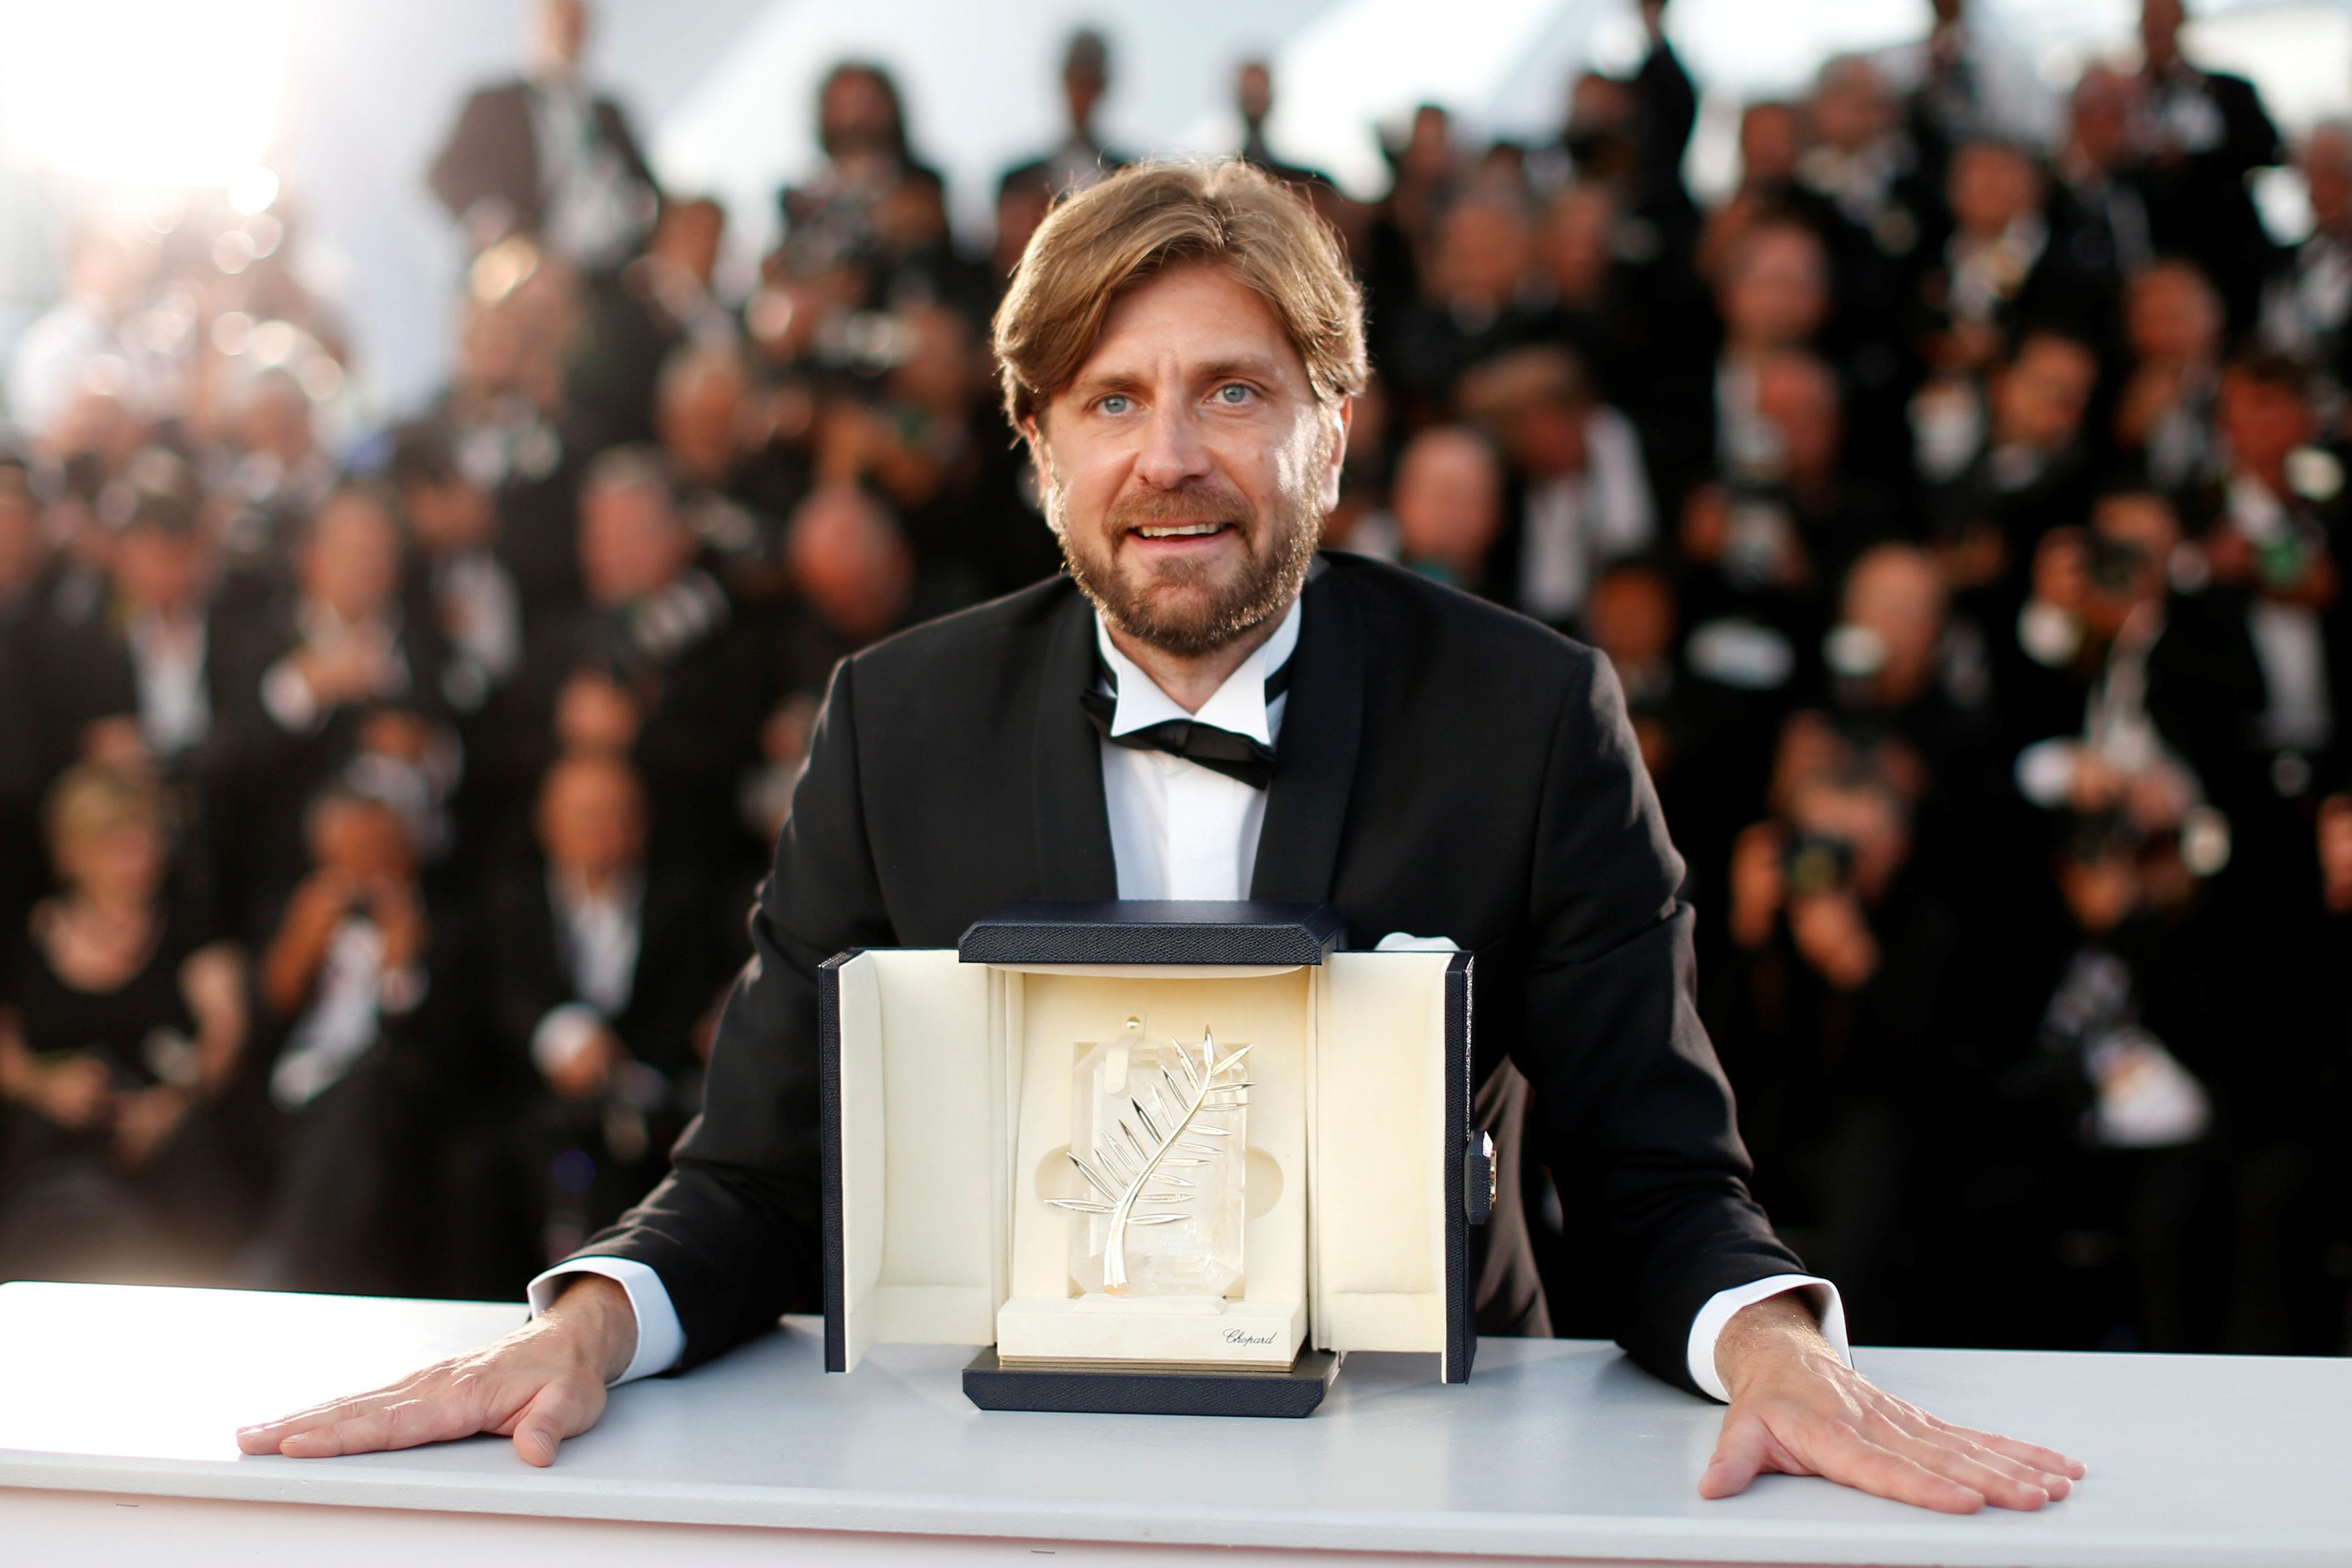 70th Cannes Film Festival Äi Photocall after Closing ceremony - Cannes, France. 28/05/2017. Director Ruben Ostlund , Palme d'Or award winner for his film